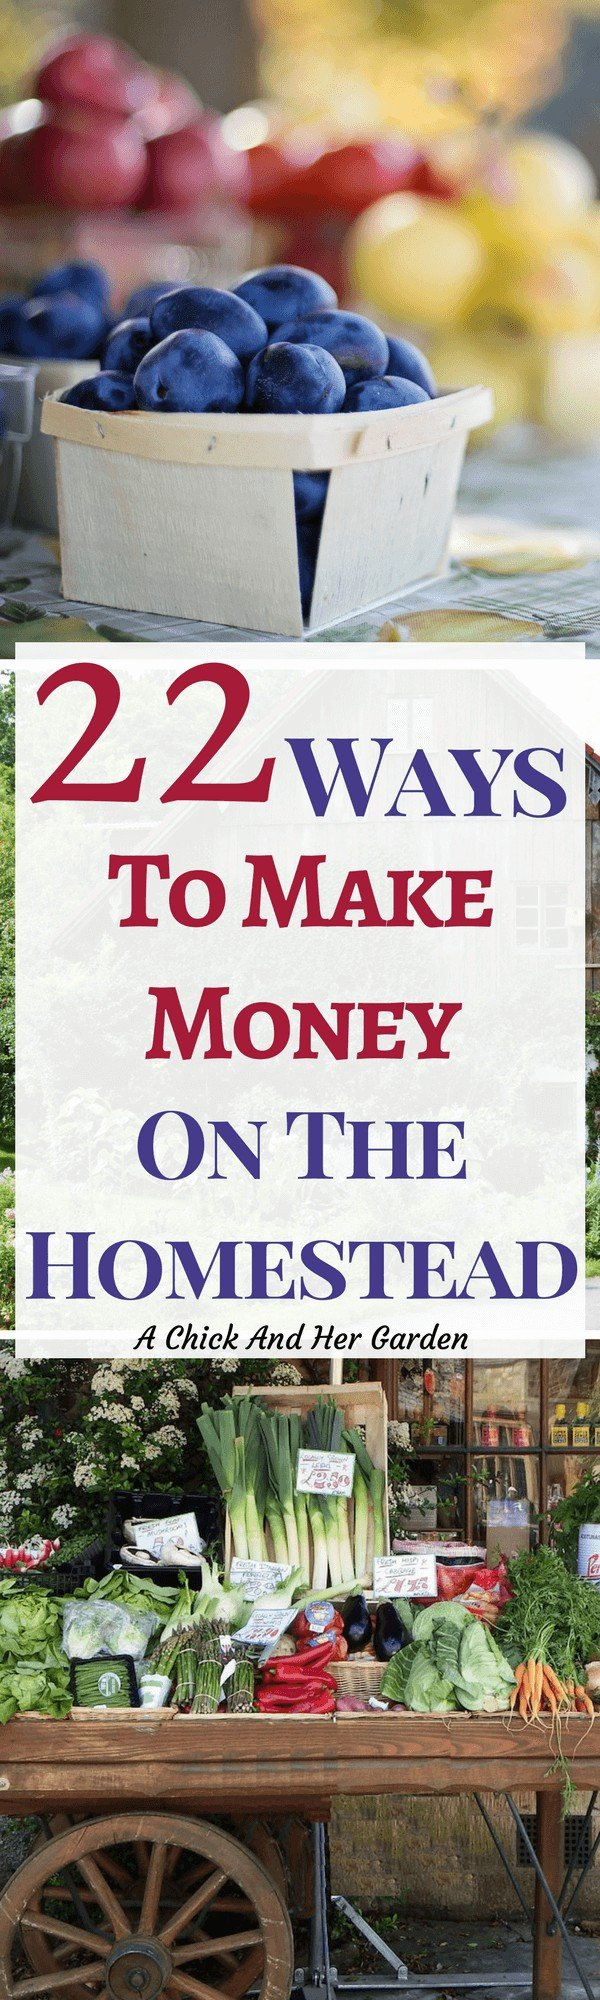 When we homestead we grow and raise our own food. But, unfortunately we still need money. These are awesome and easy ways to make money on the homestead!